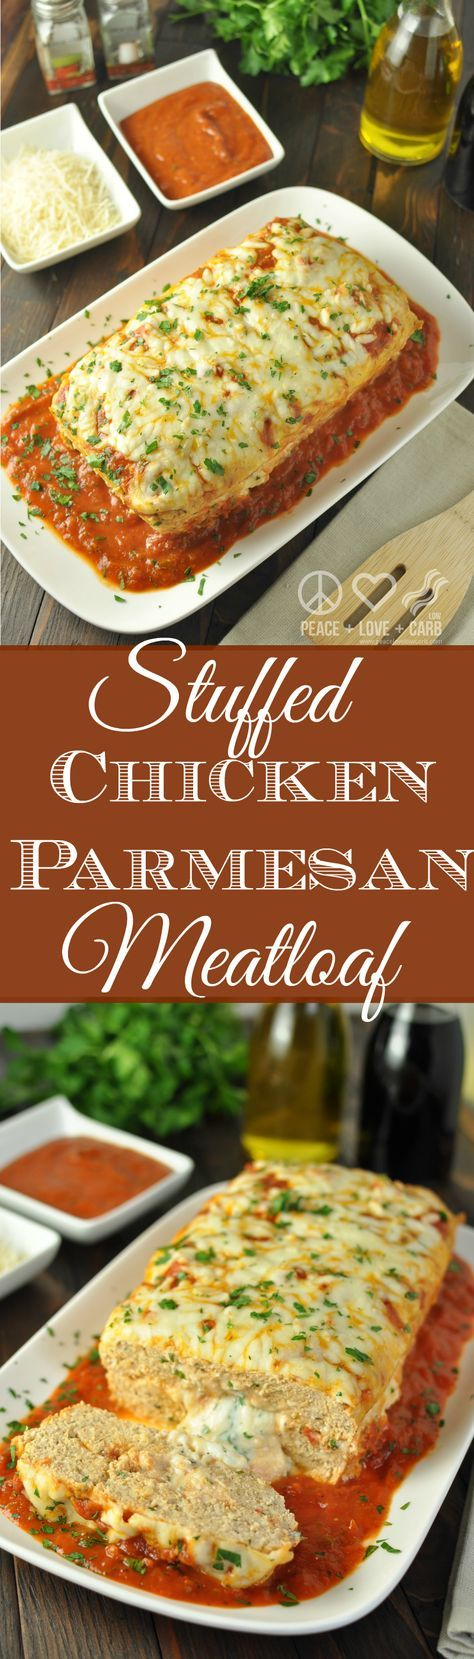 Cheesy Stuffed Chicken Parmesan Meatloaf - Low Carb, Gluten Free | Peace Love and Low Carb  via @PeaceLoveLoCarb